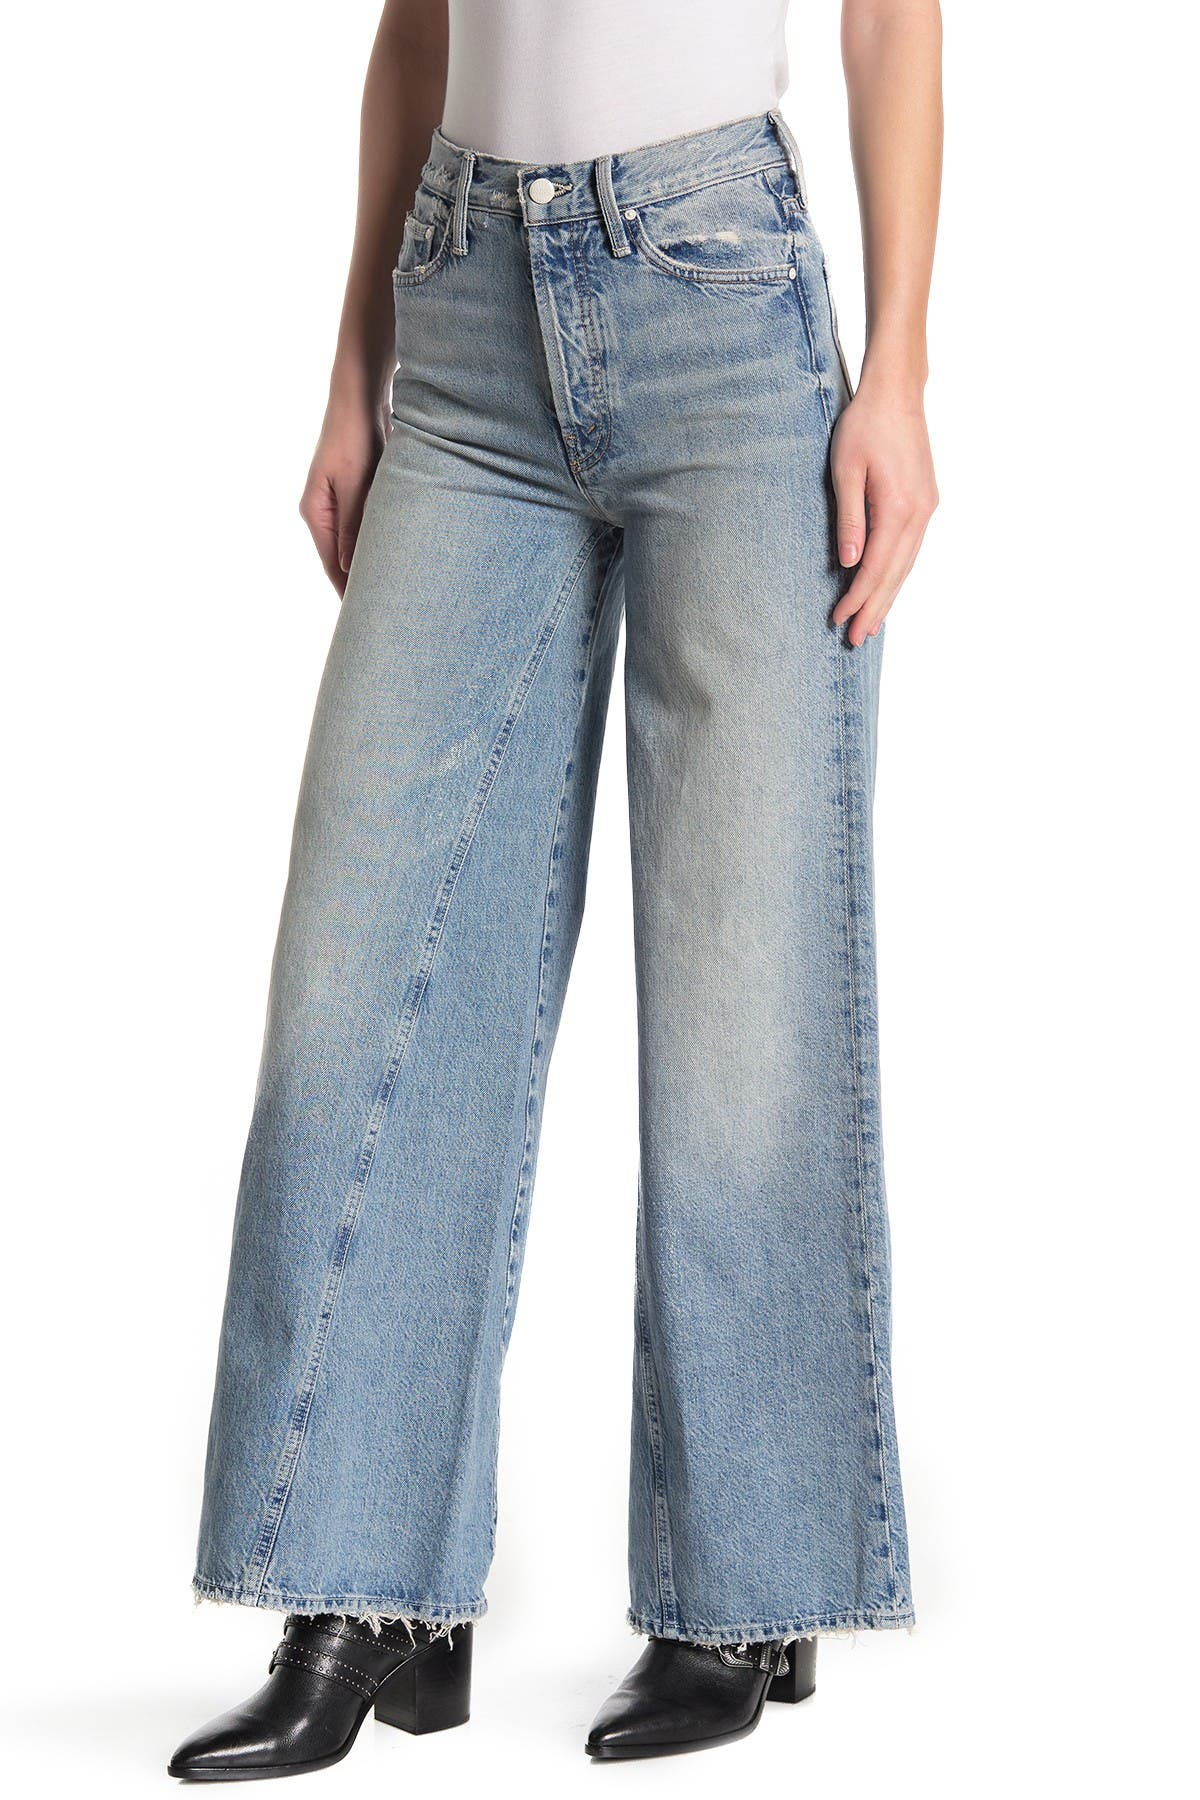 Image of MOTHER The Enchanter Distressed Jeans